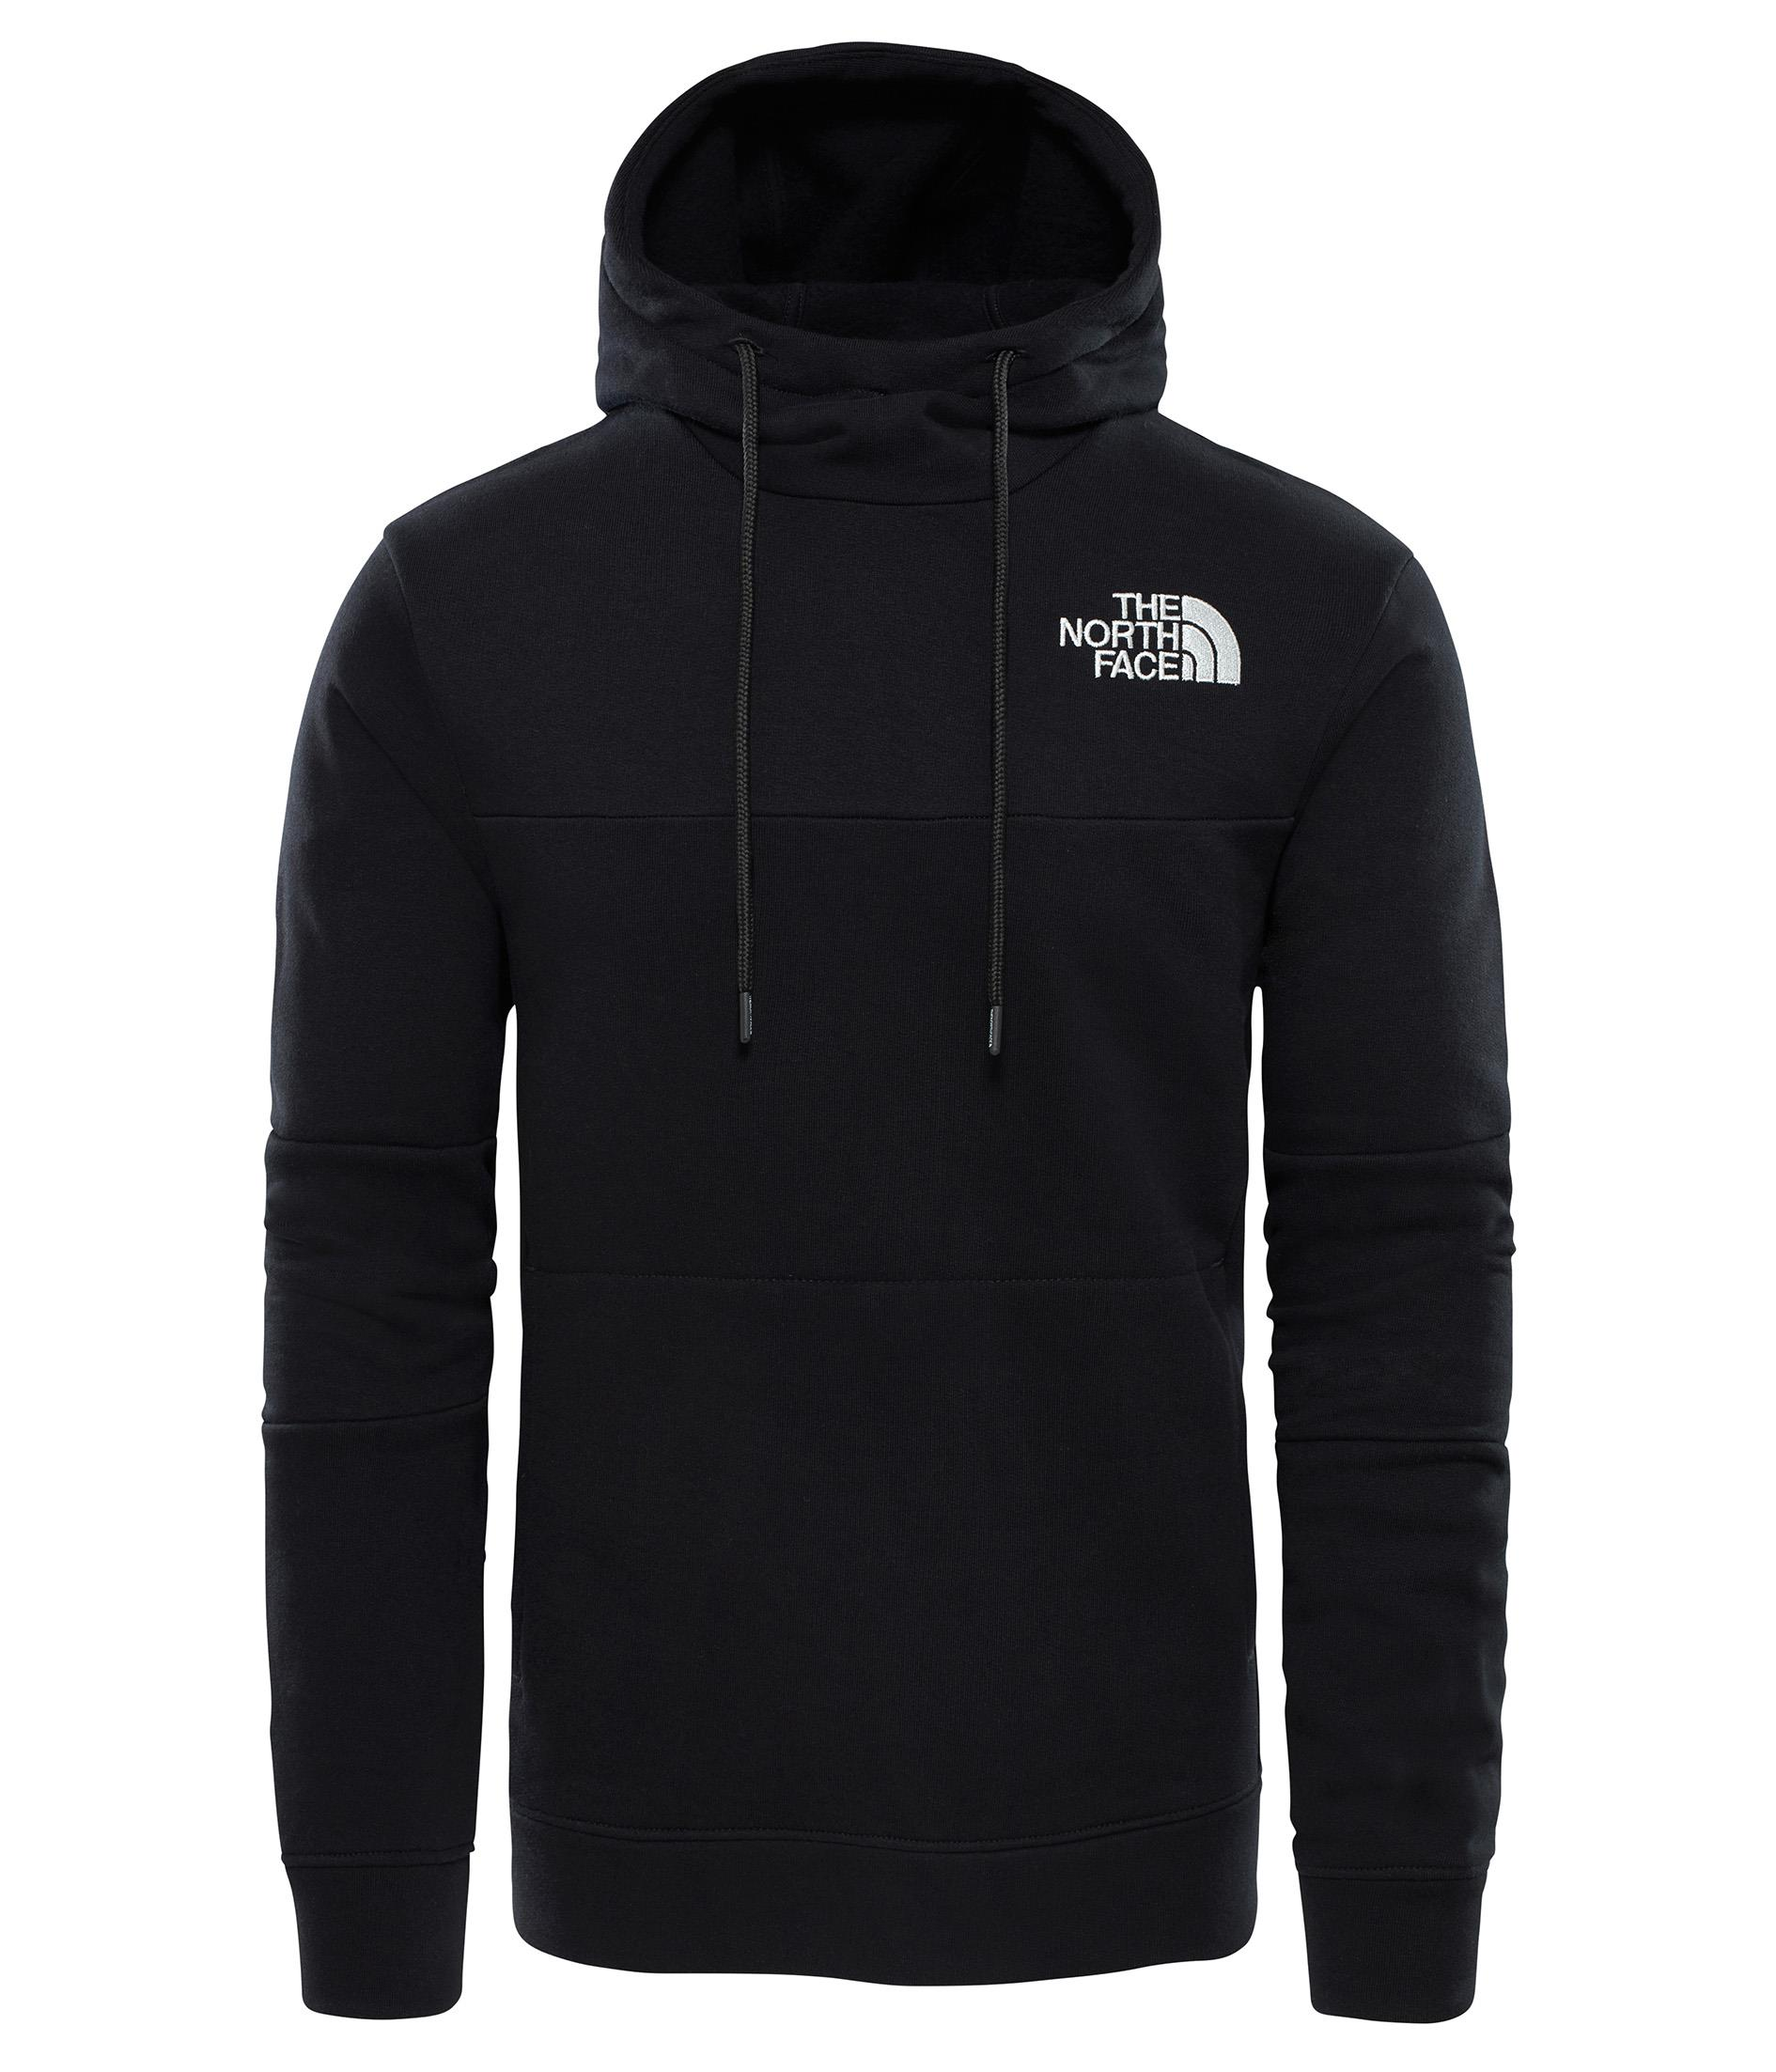 The North Face Erkek Hımalayan Hoodıe Sweatshirt T93L6IJK3